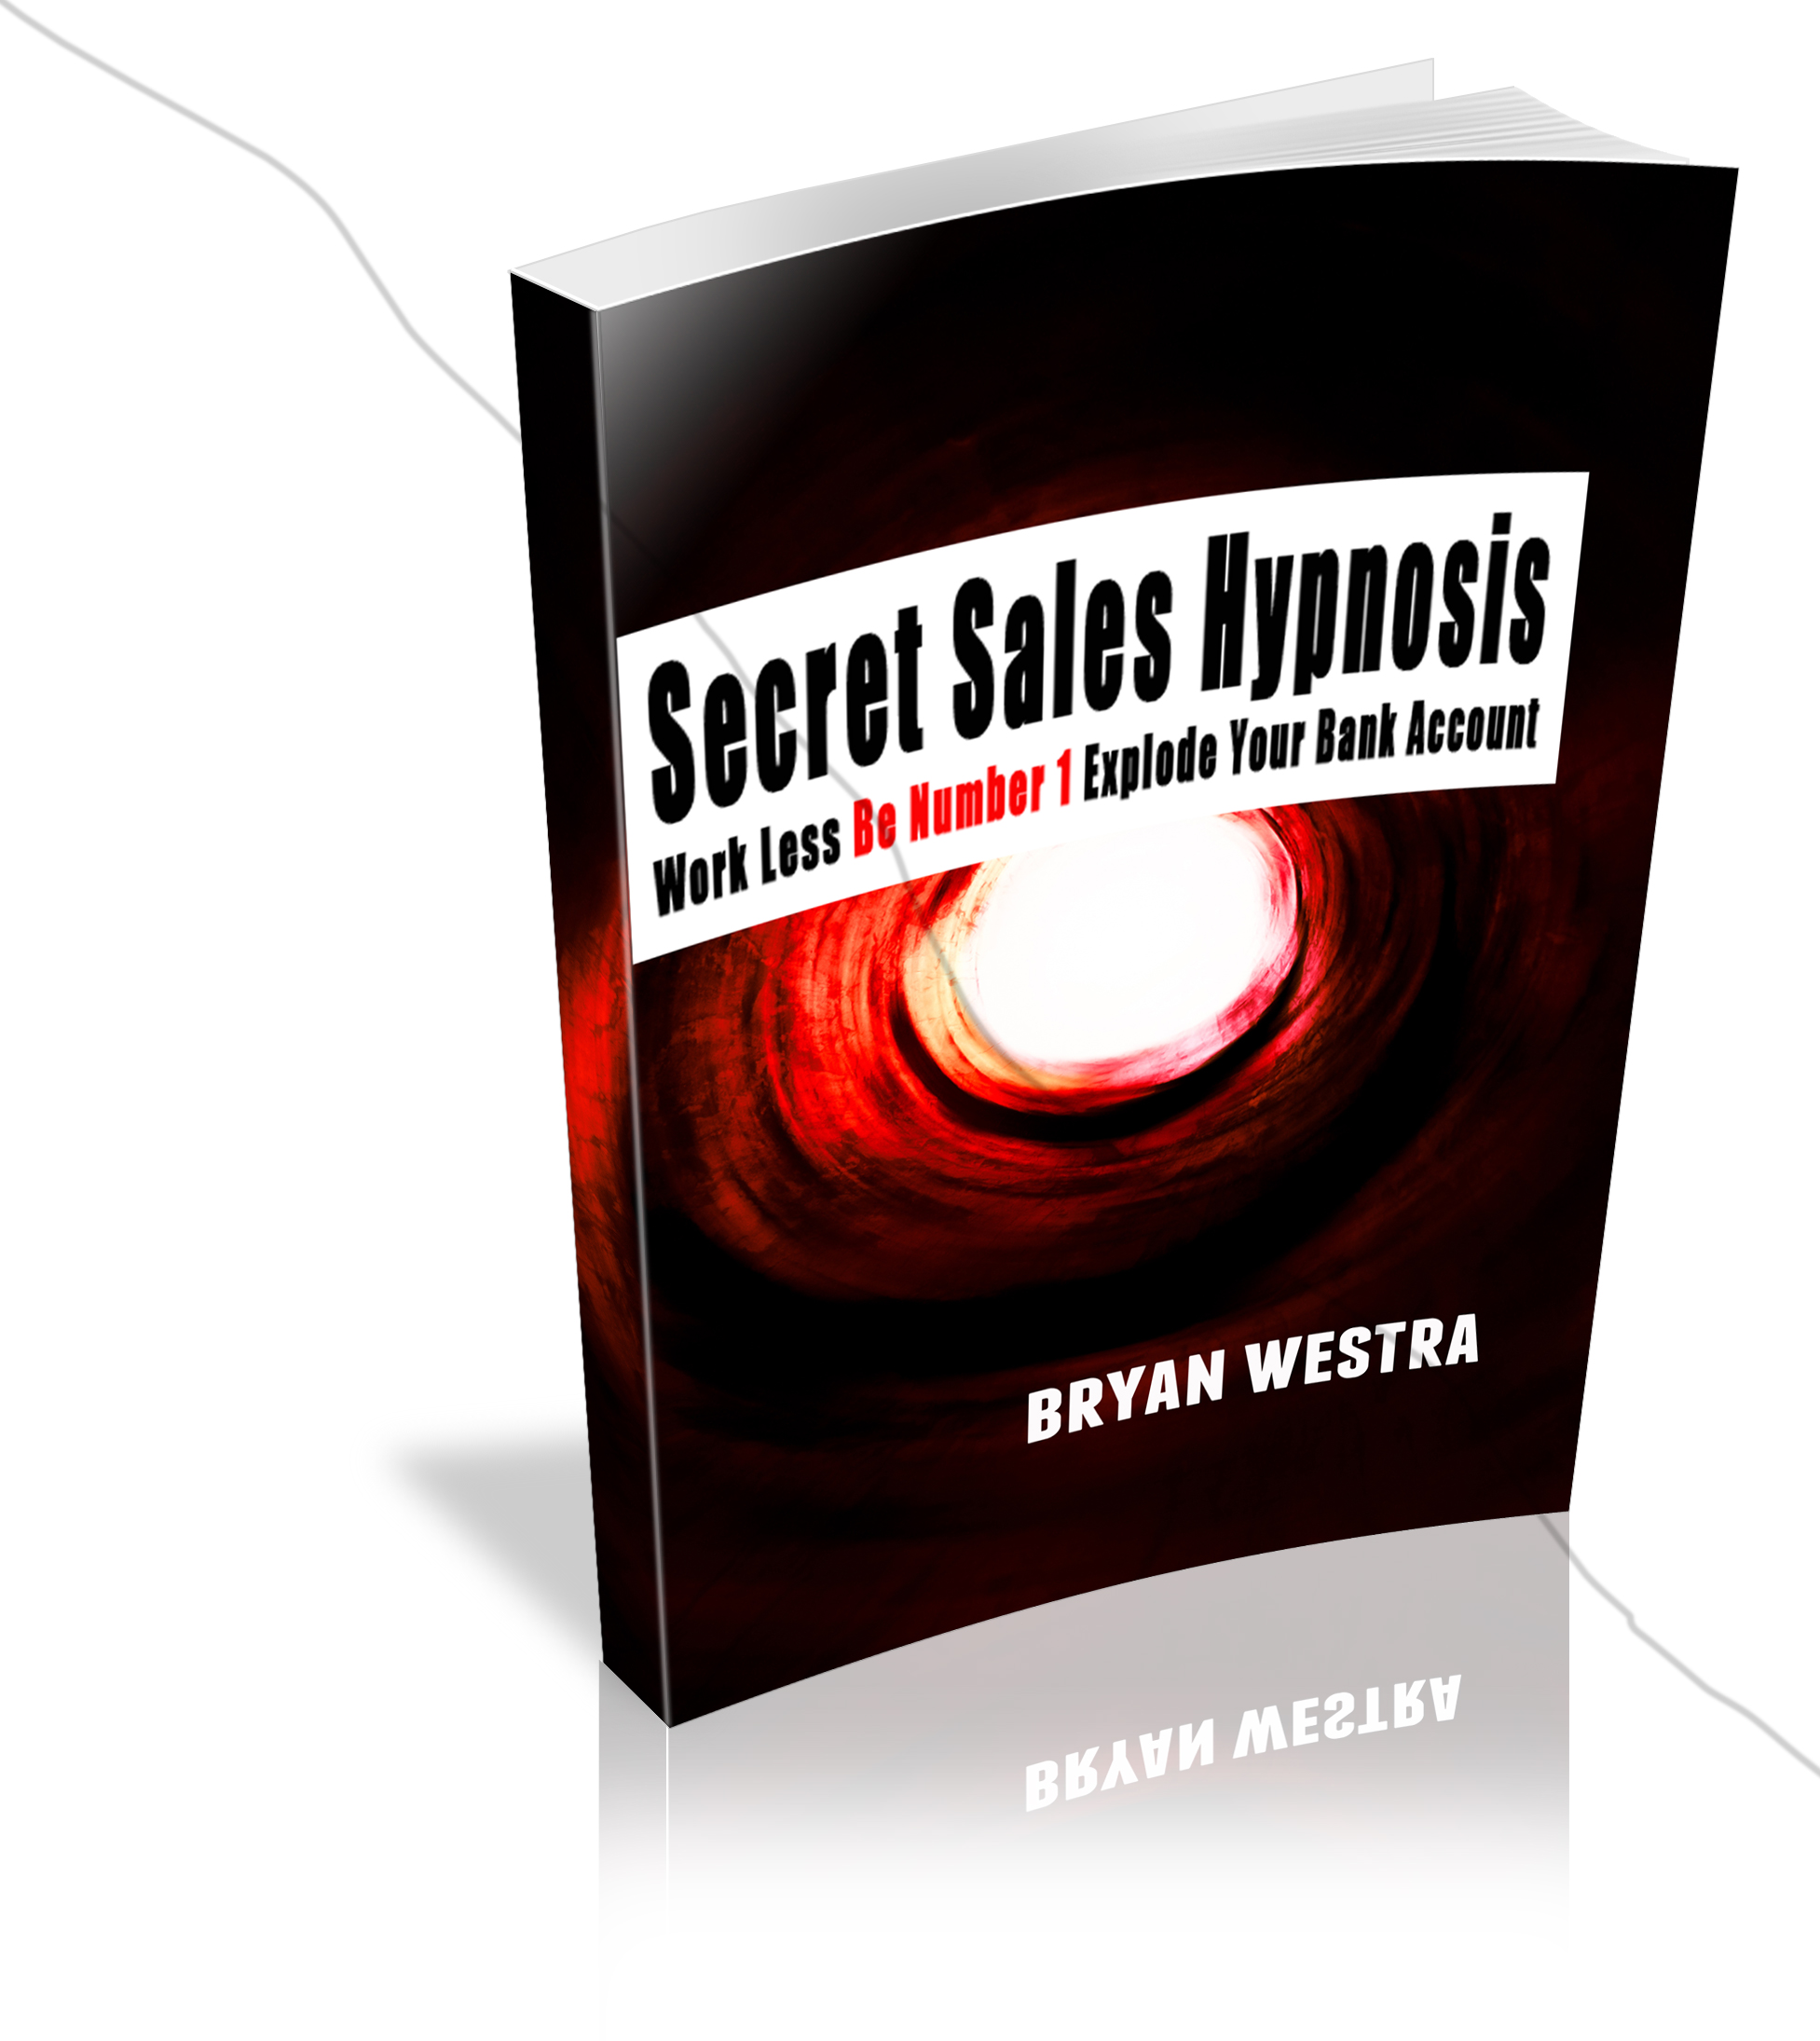 Secret Sales Hypnosis: Work Less, Be Number 1, Explode Your Bank Account [ebook version PDF]